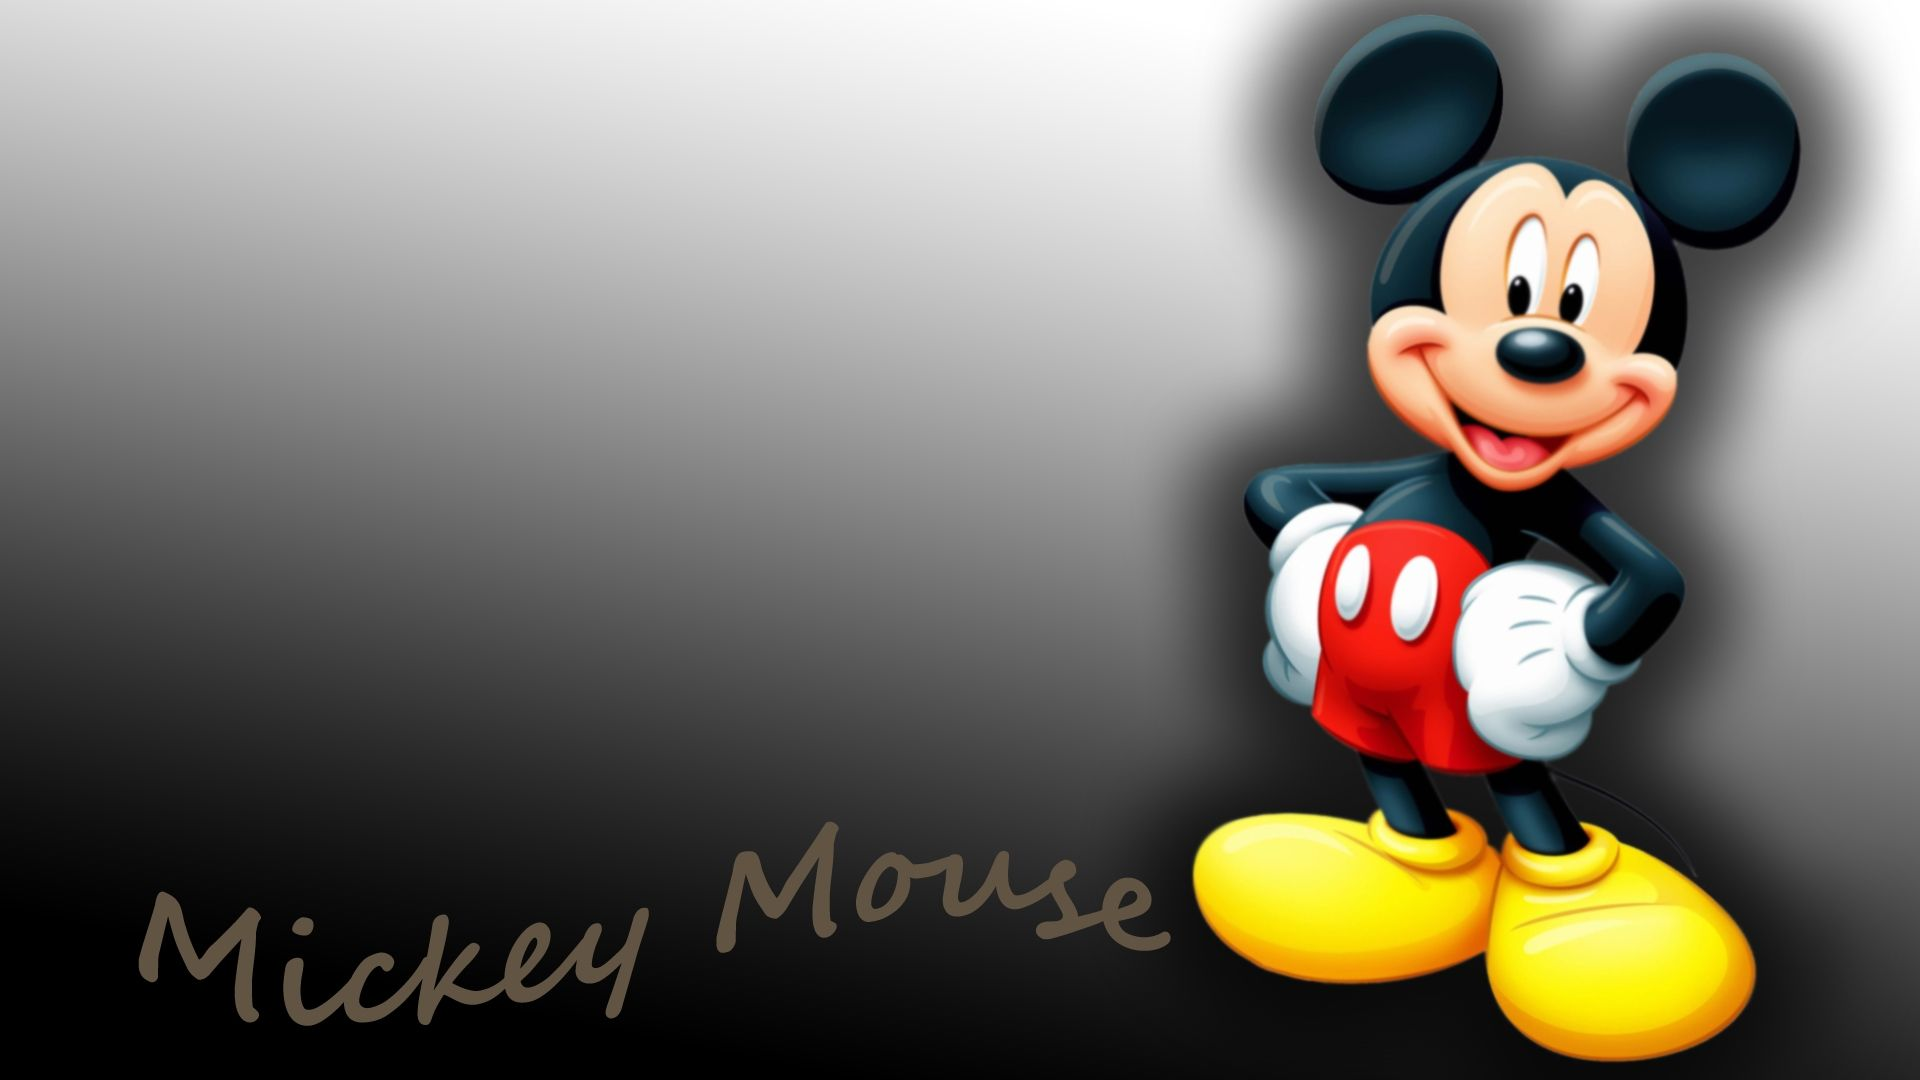 Mickey Mouse Free Wallpapers For Desktop Pc Places To Visit In